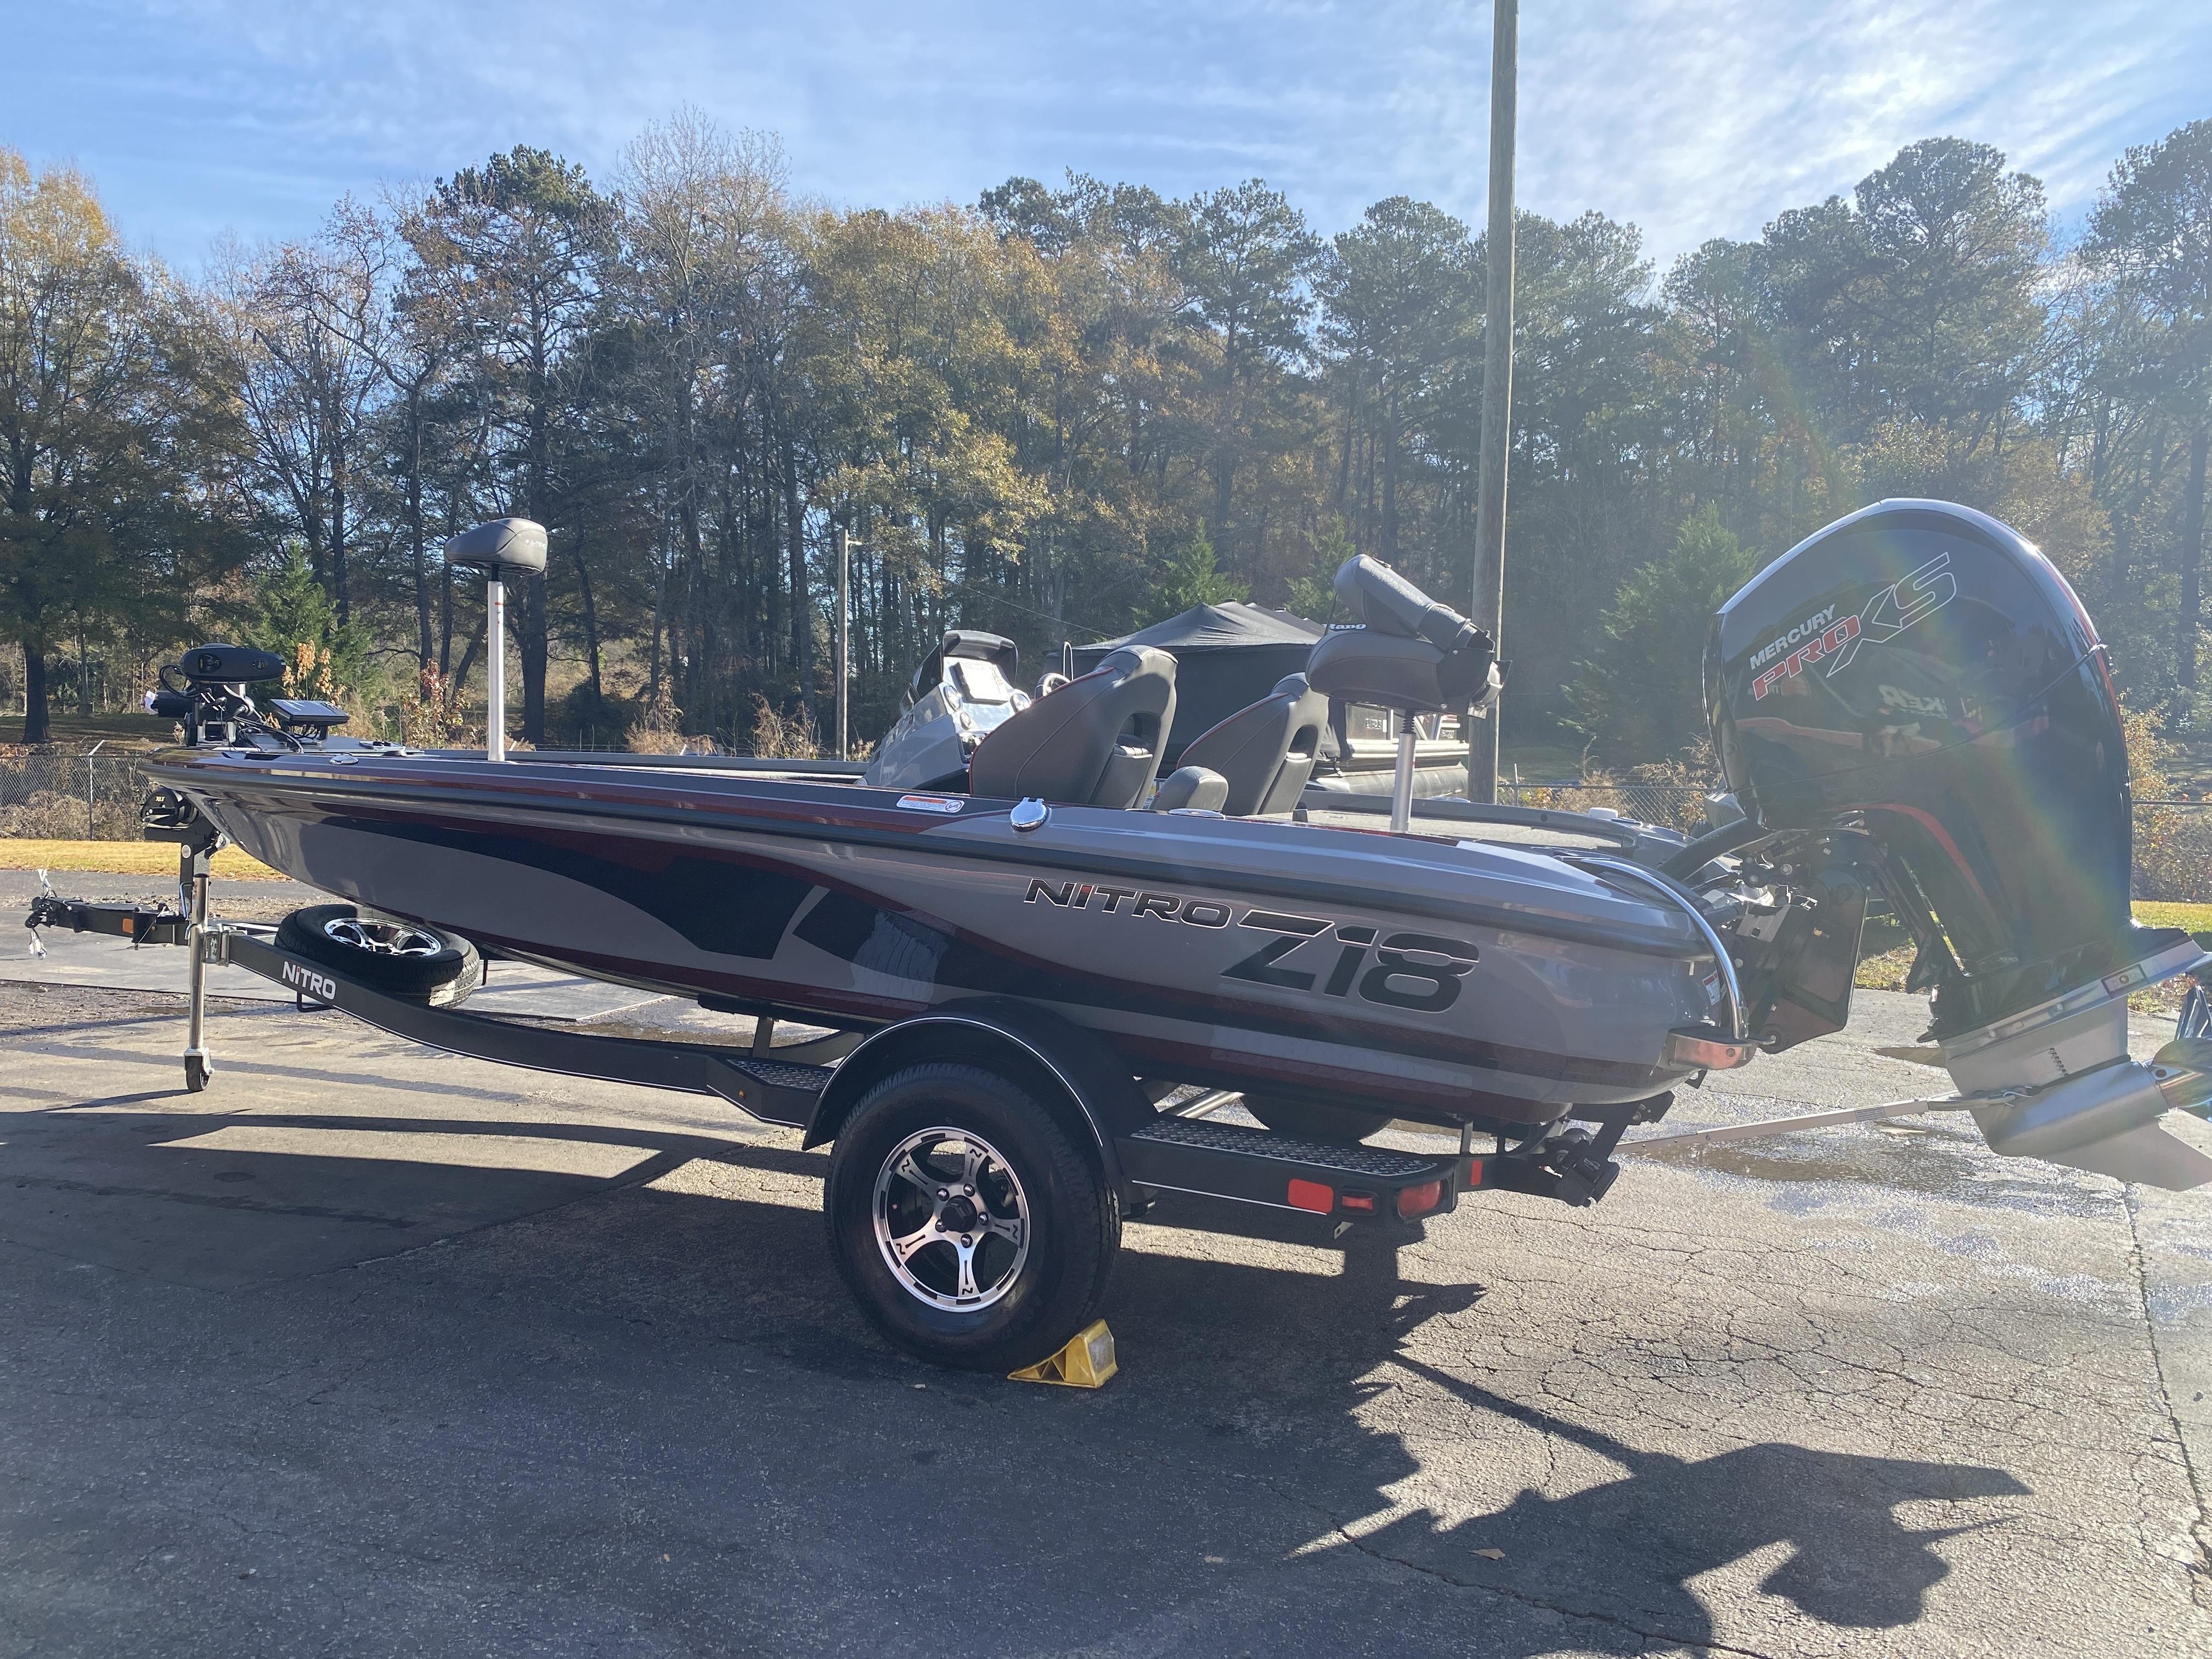 2021 Nitro boat for sale, model of the boat is Z18 H1 & Image # 27 of 28